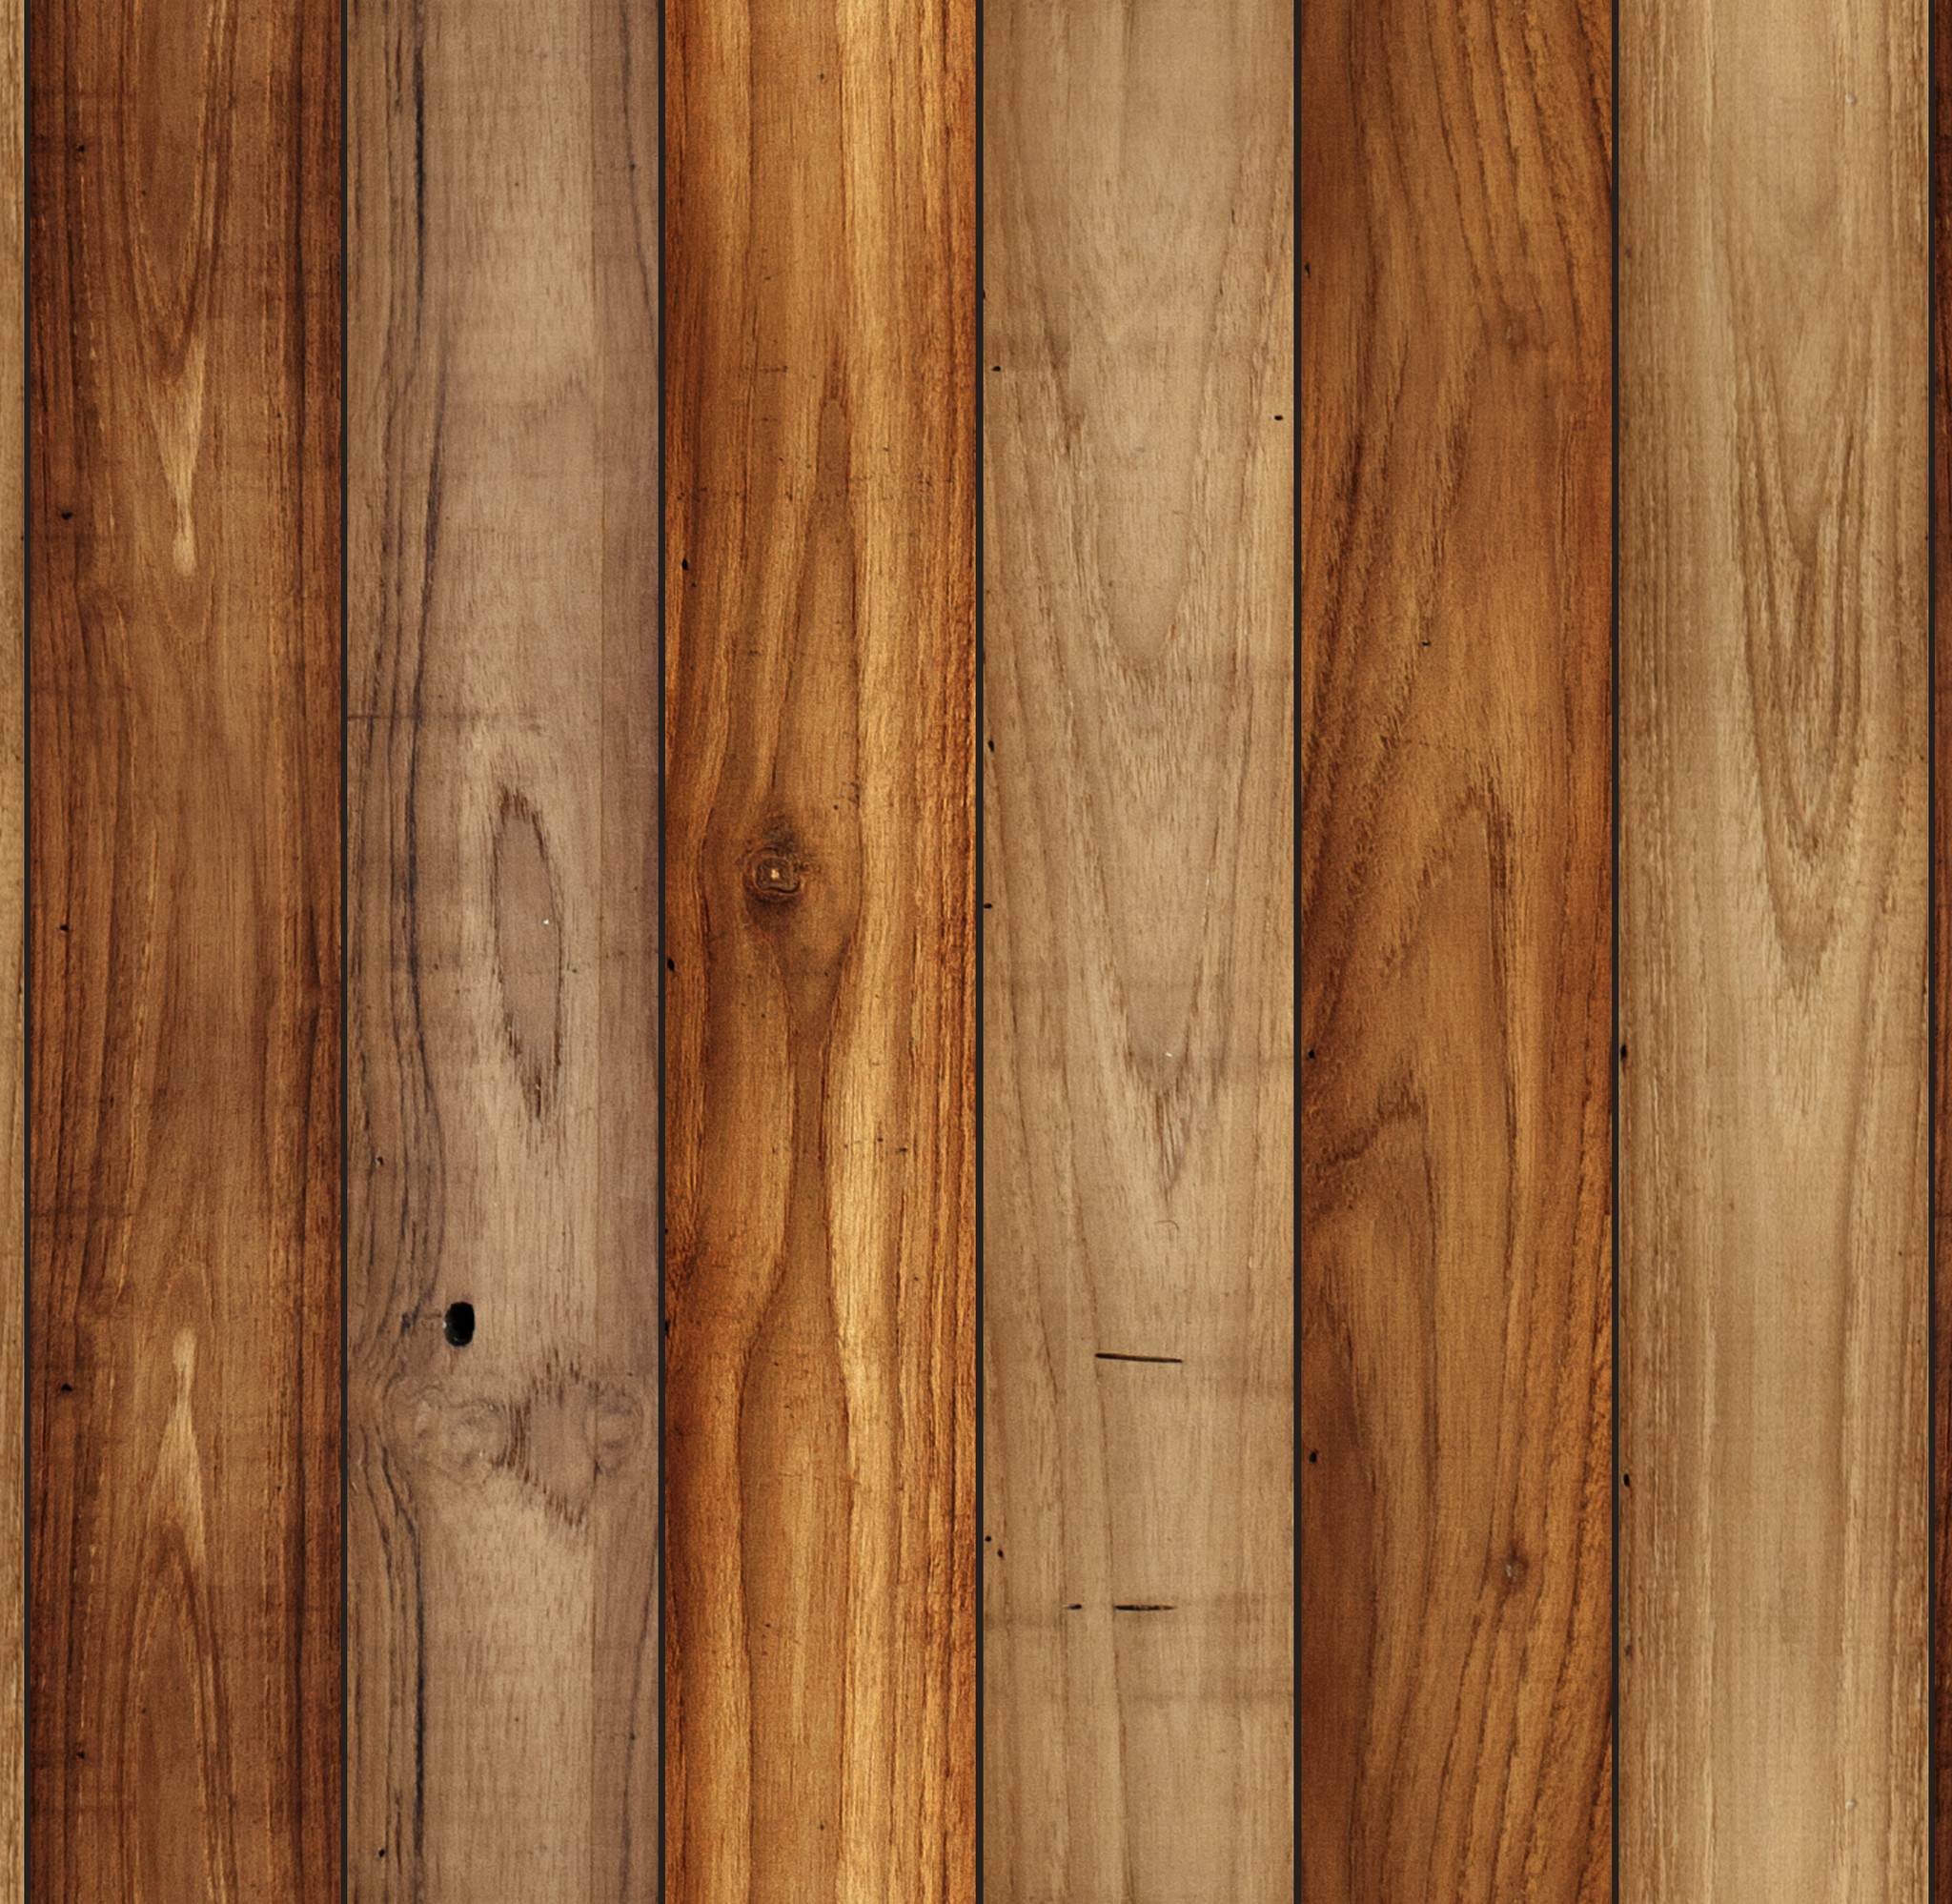 Wooden Pictures Wood Effect Wallpaper